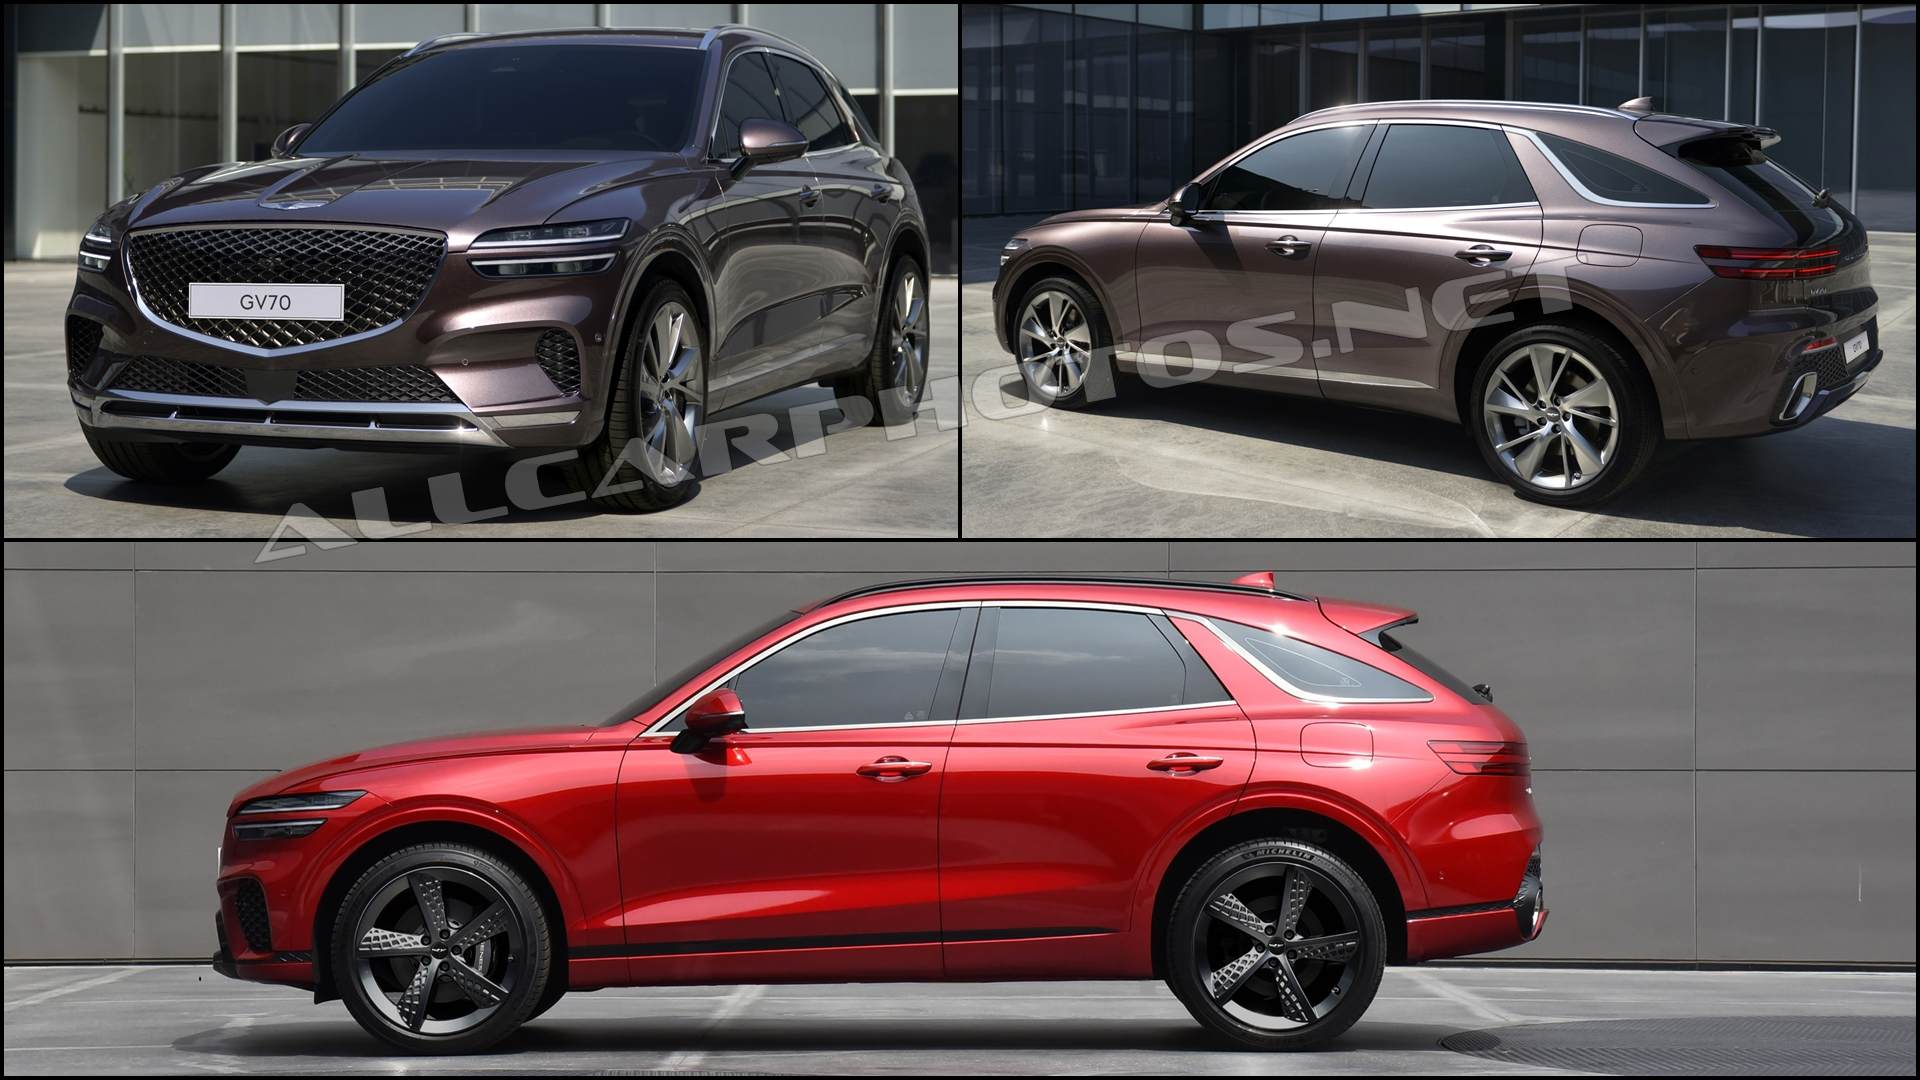 Genesis GV70 2021: What are its features? की तस्वीर